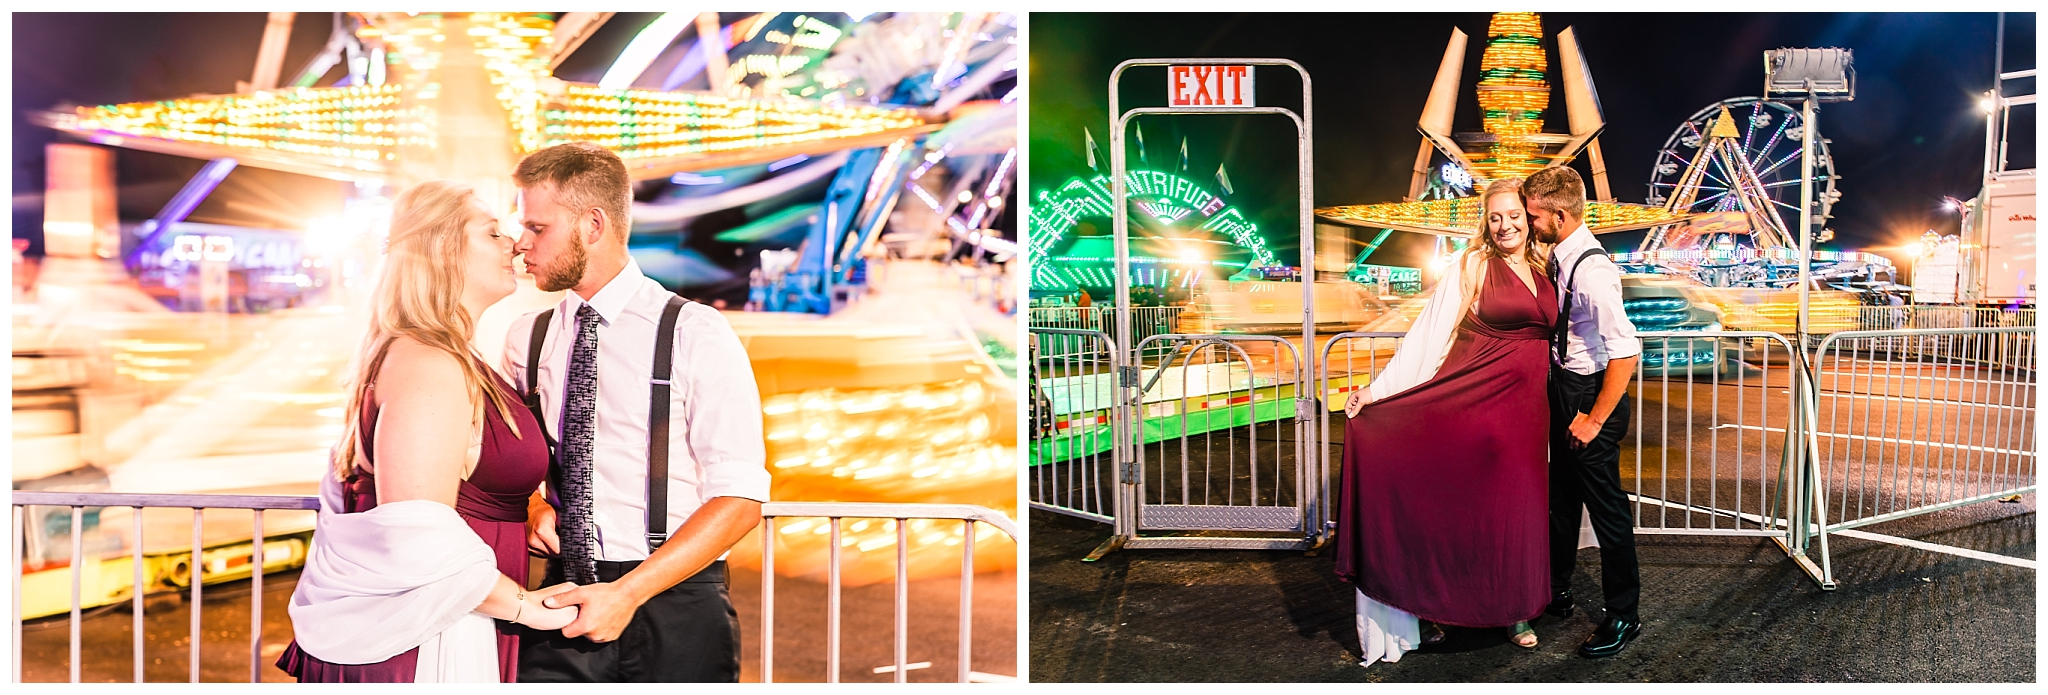 lafayette indiana sunset engagement photography county fair adventure new adventure productions_0696.jpg